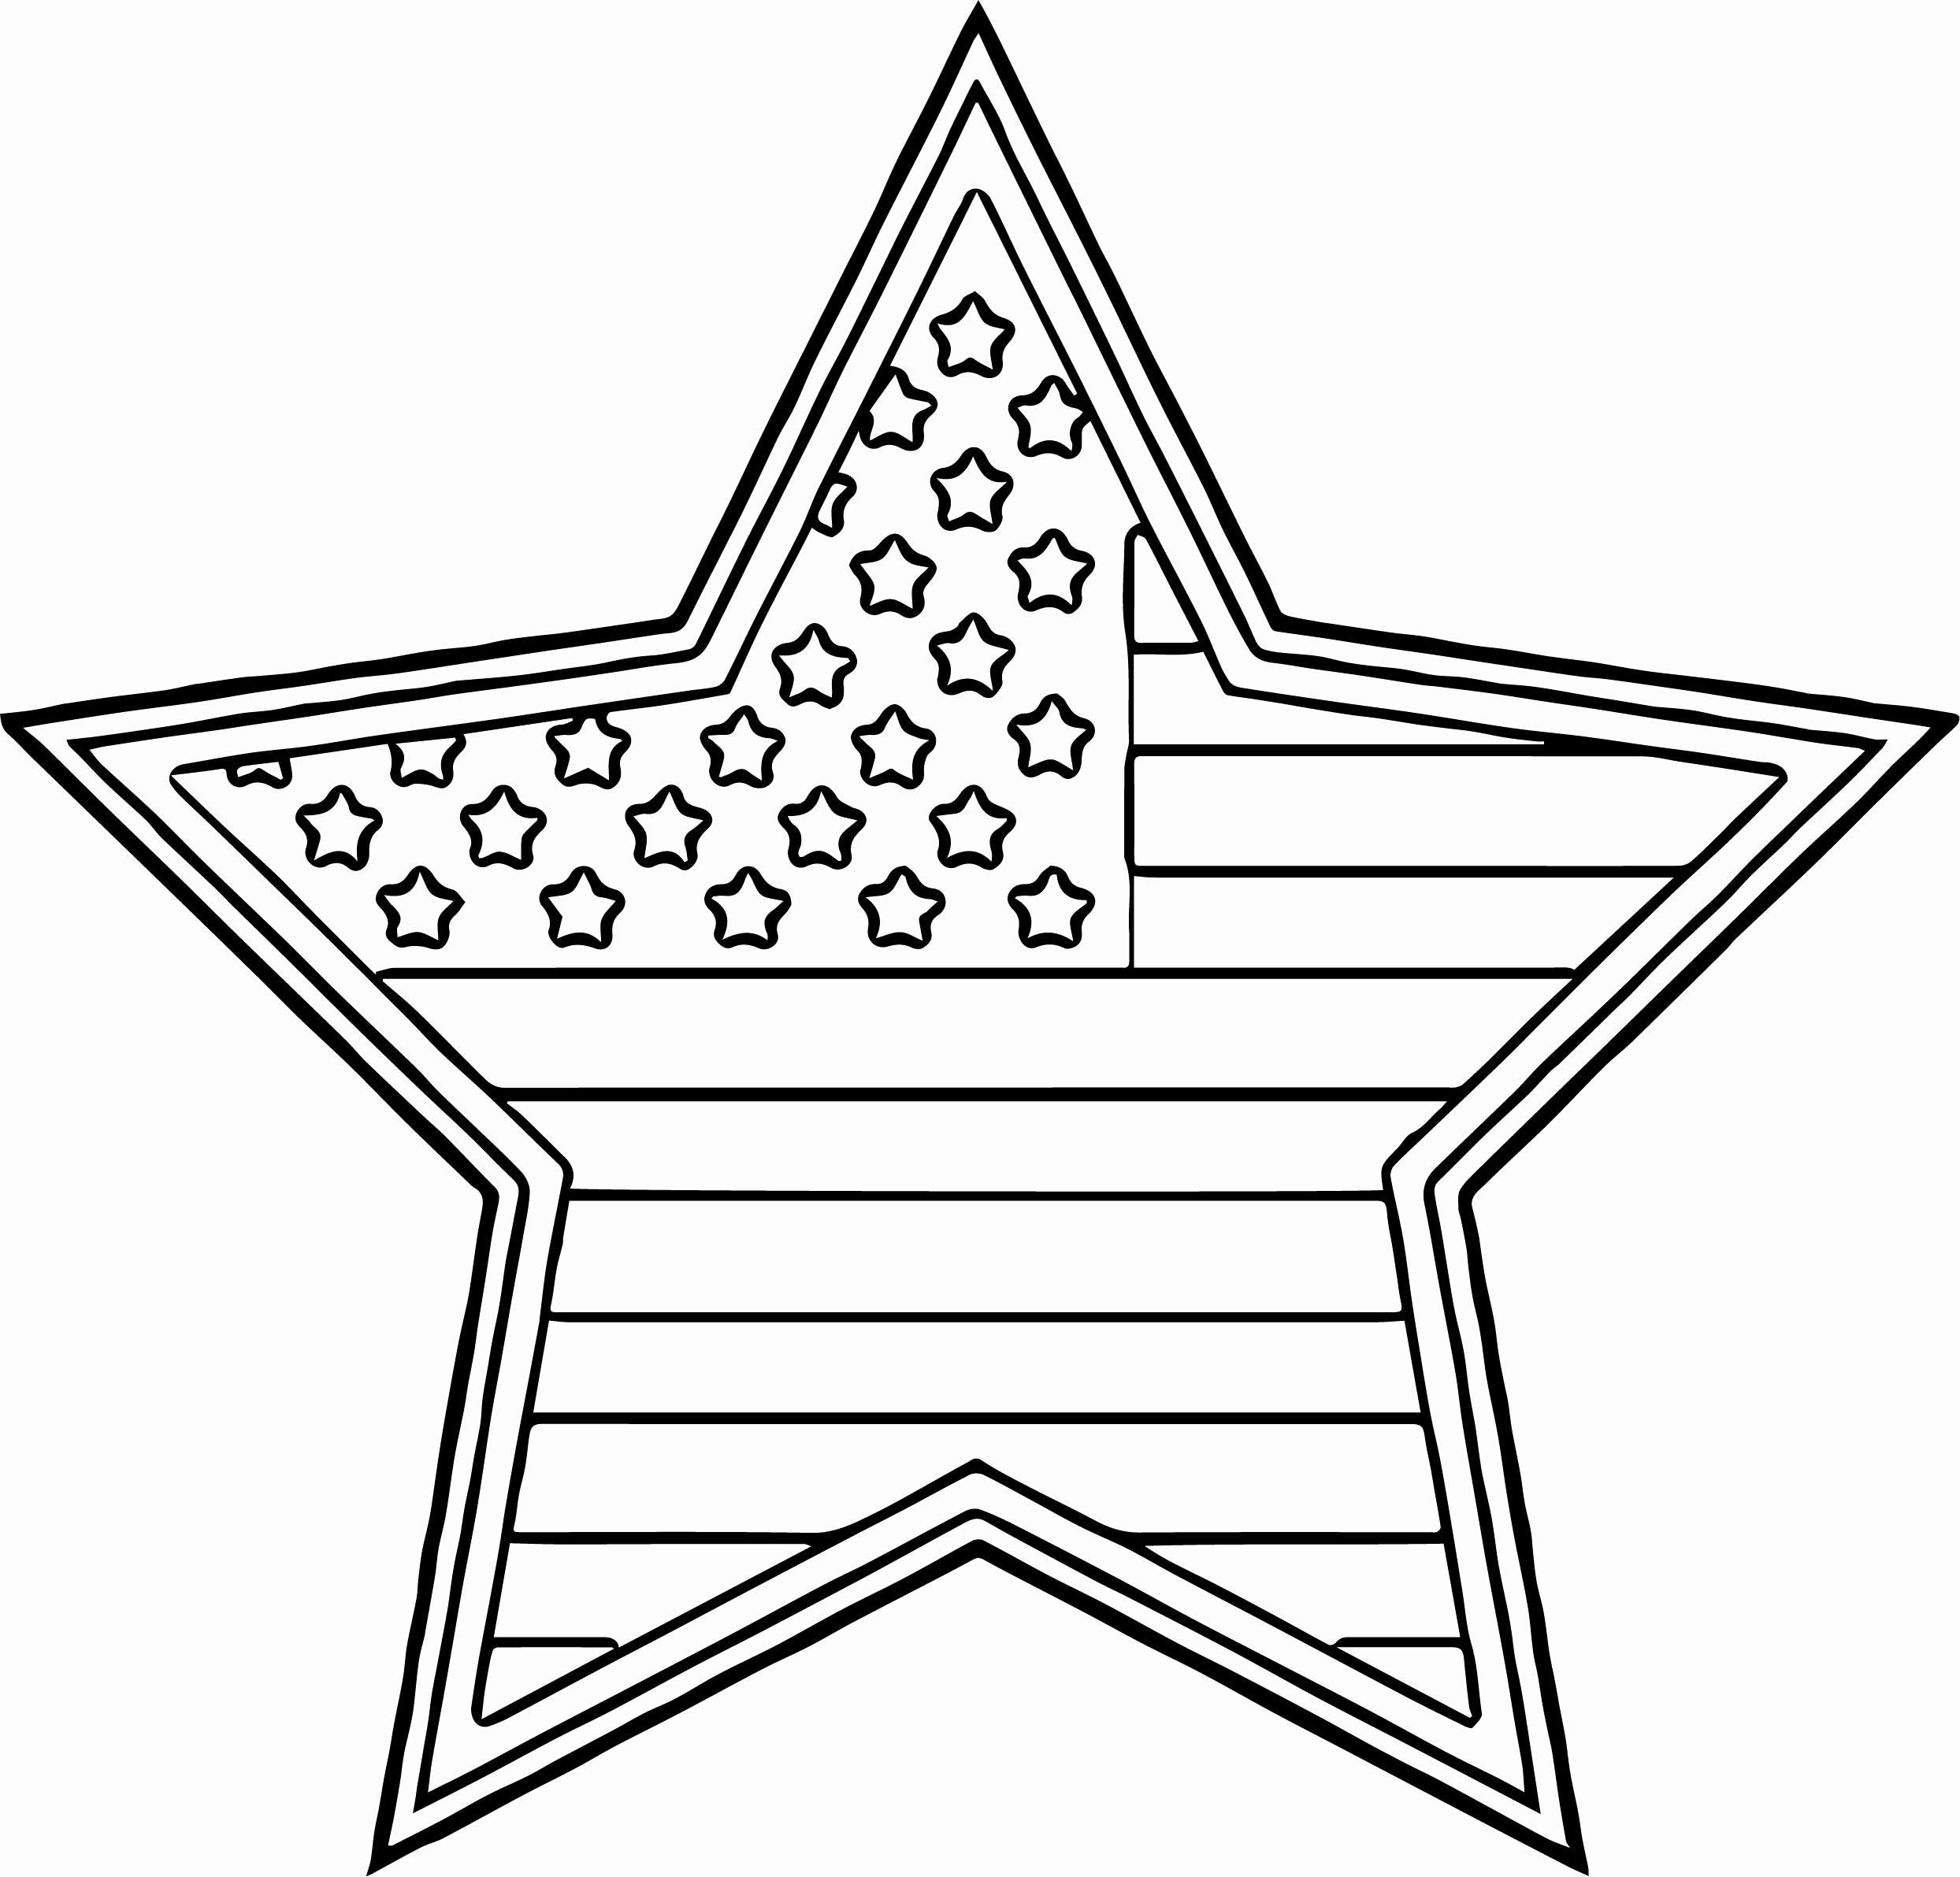 Us Flag Coloring Sheet Inspirational American Flag Star Coloring Page American Flag Coloring Page Star Coloring Pages Flag Coloring Pages